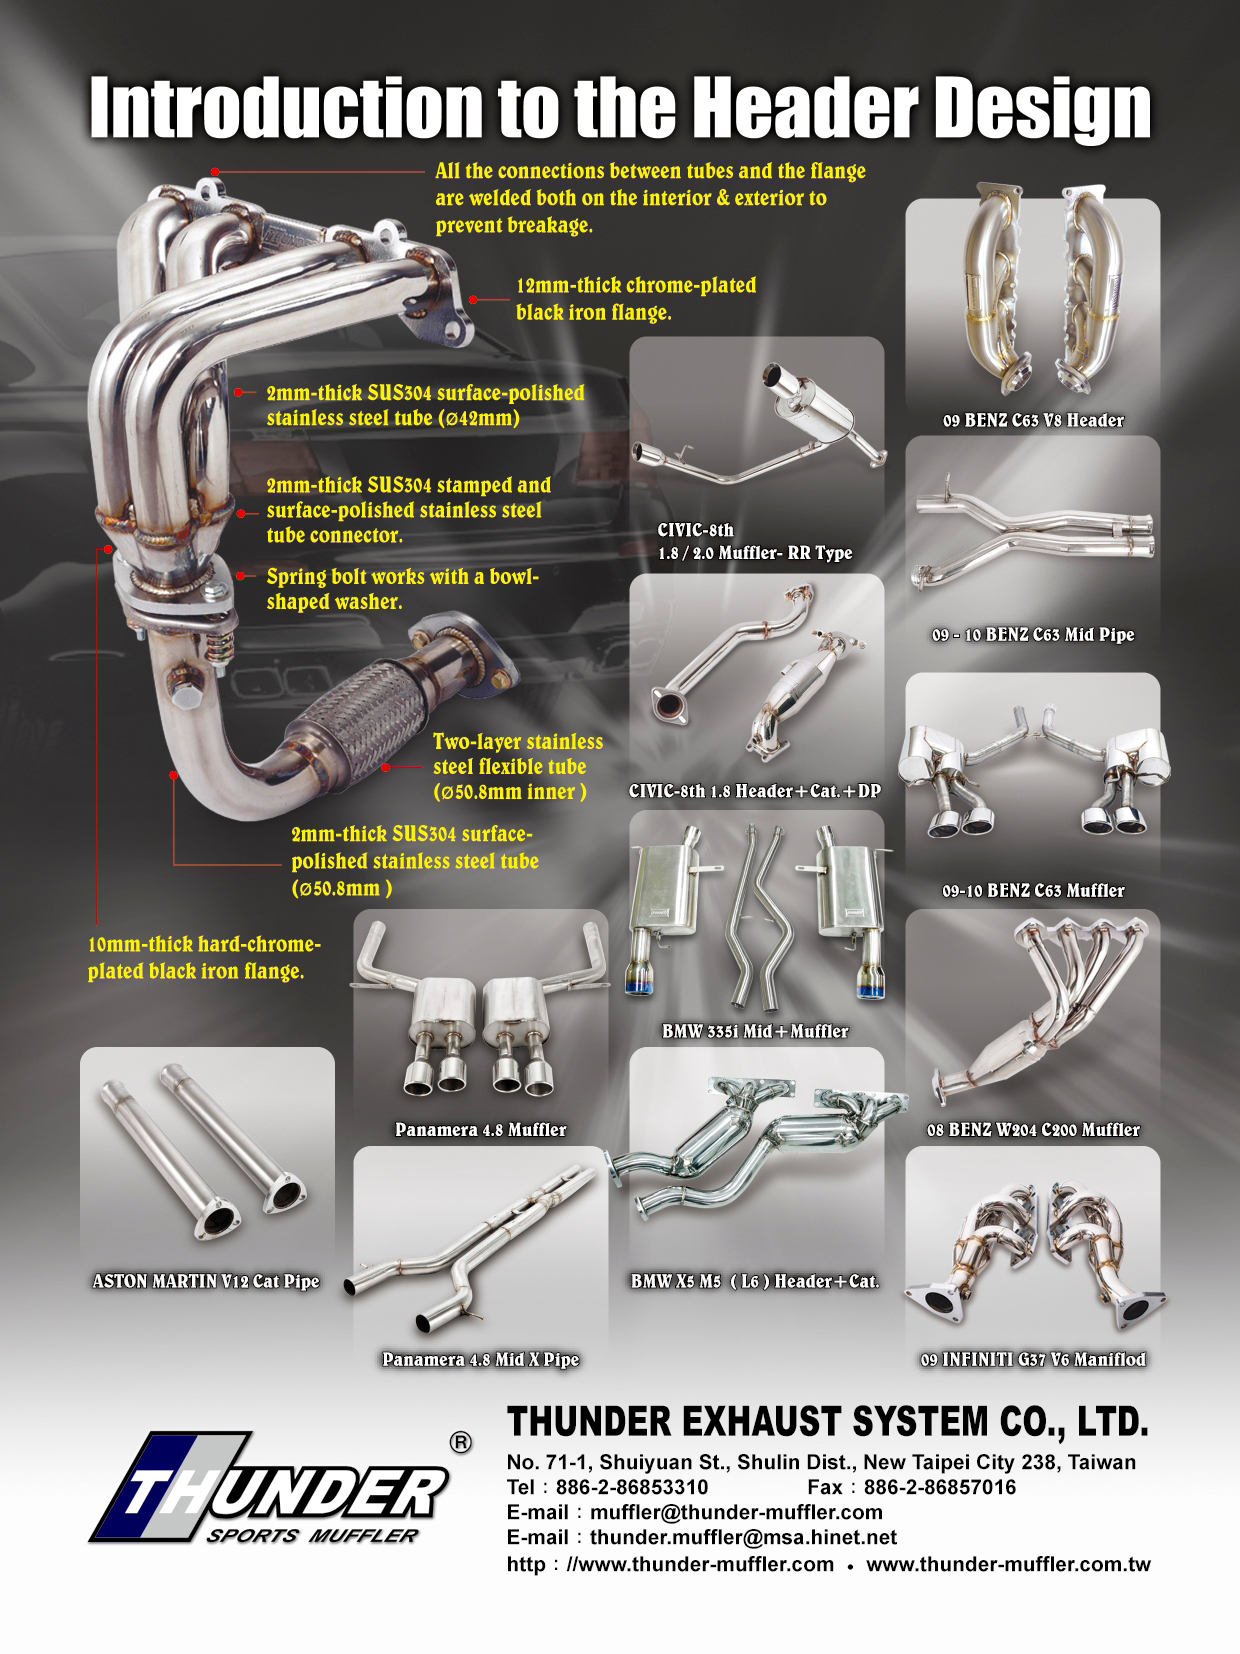 Thunder Exhuast System Co ,Ltd  Exhuast E-catalog (2012